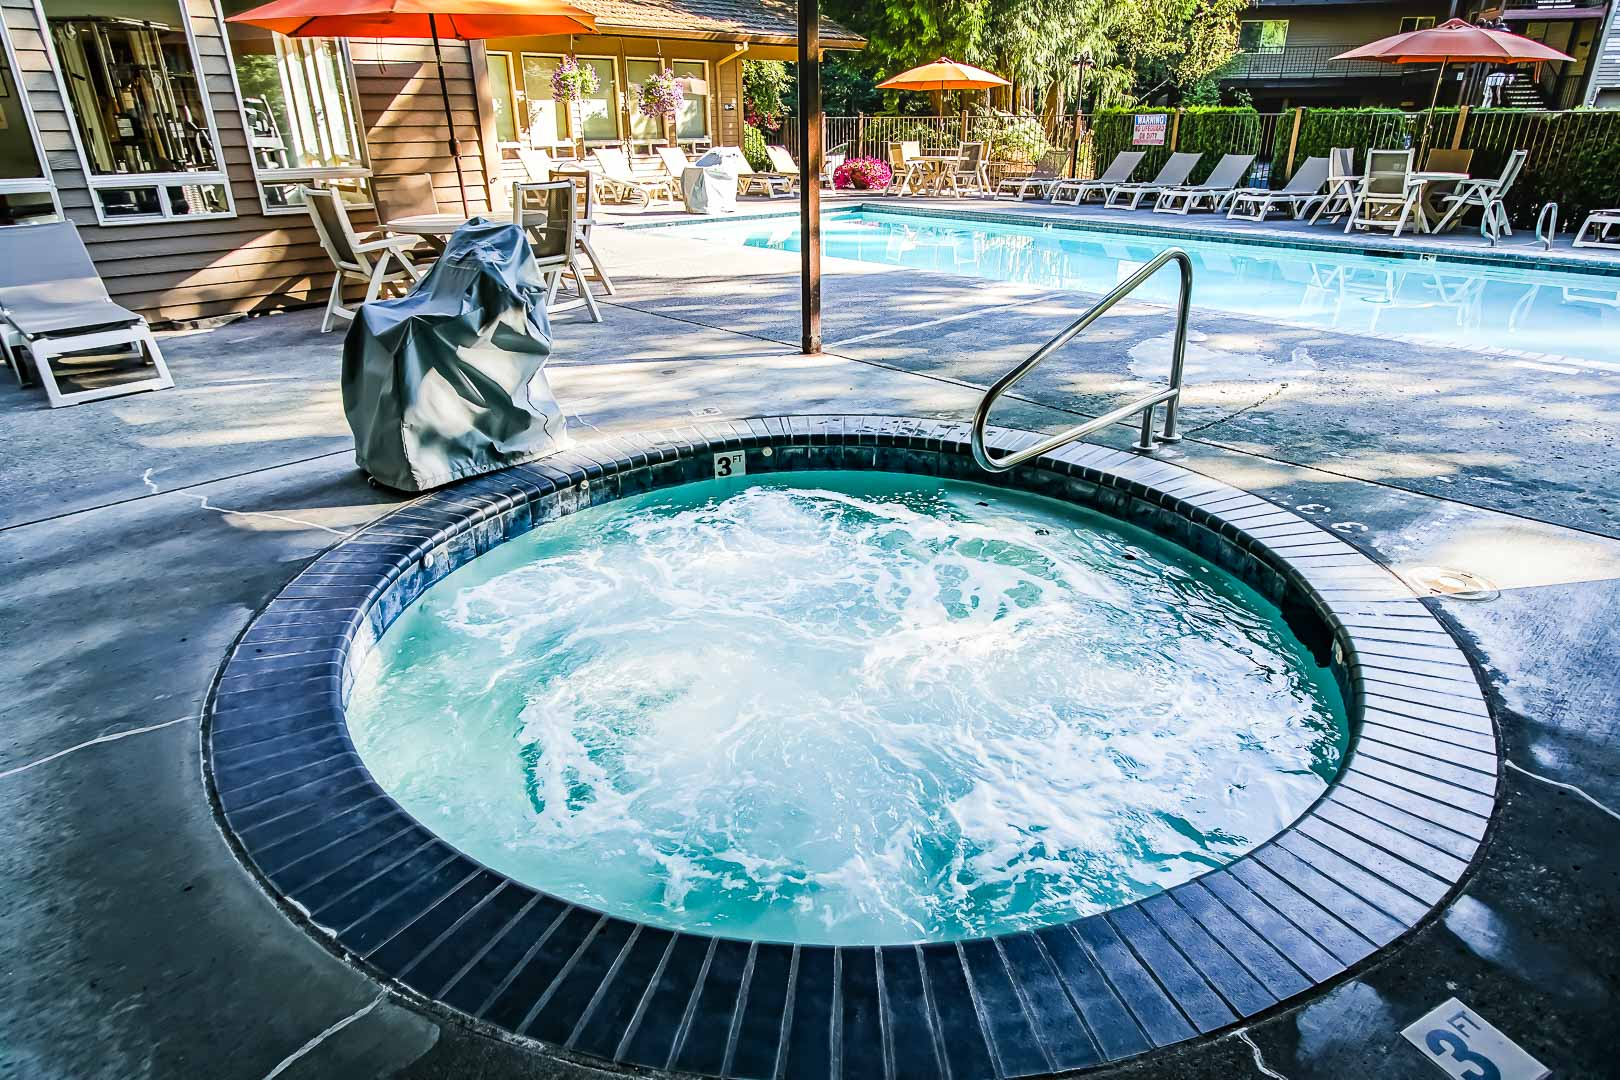 A spacious outdoor swimming pool and a jucuzzi tub at VRI's Whispering Woods Resort in Oregon.